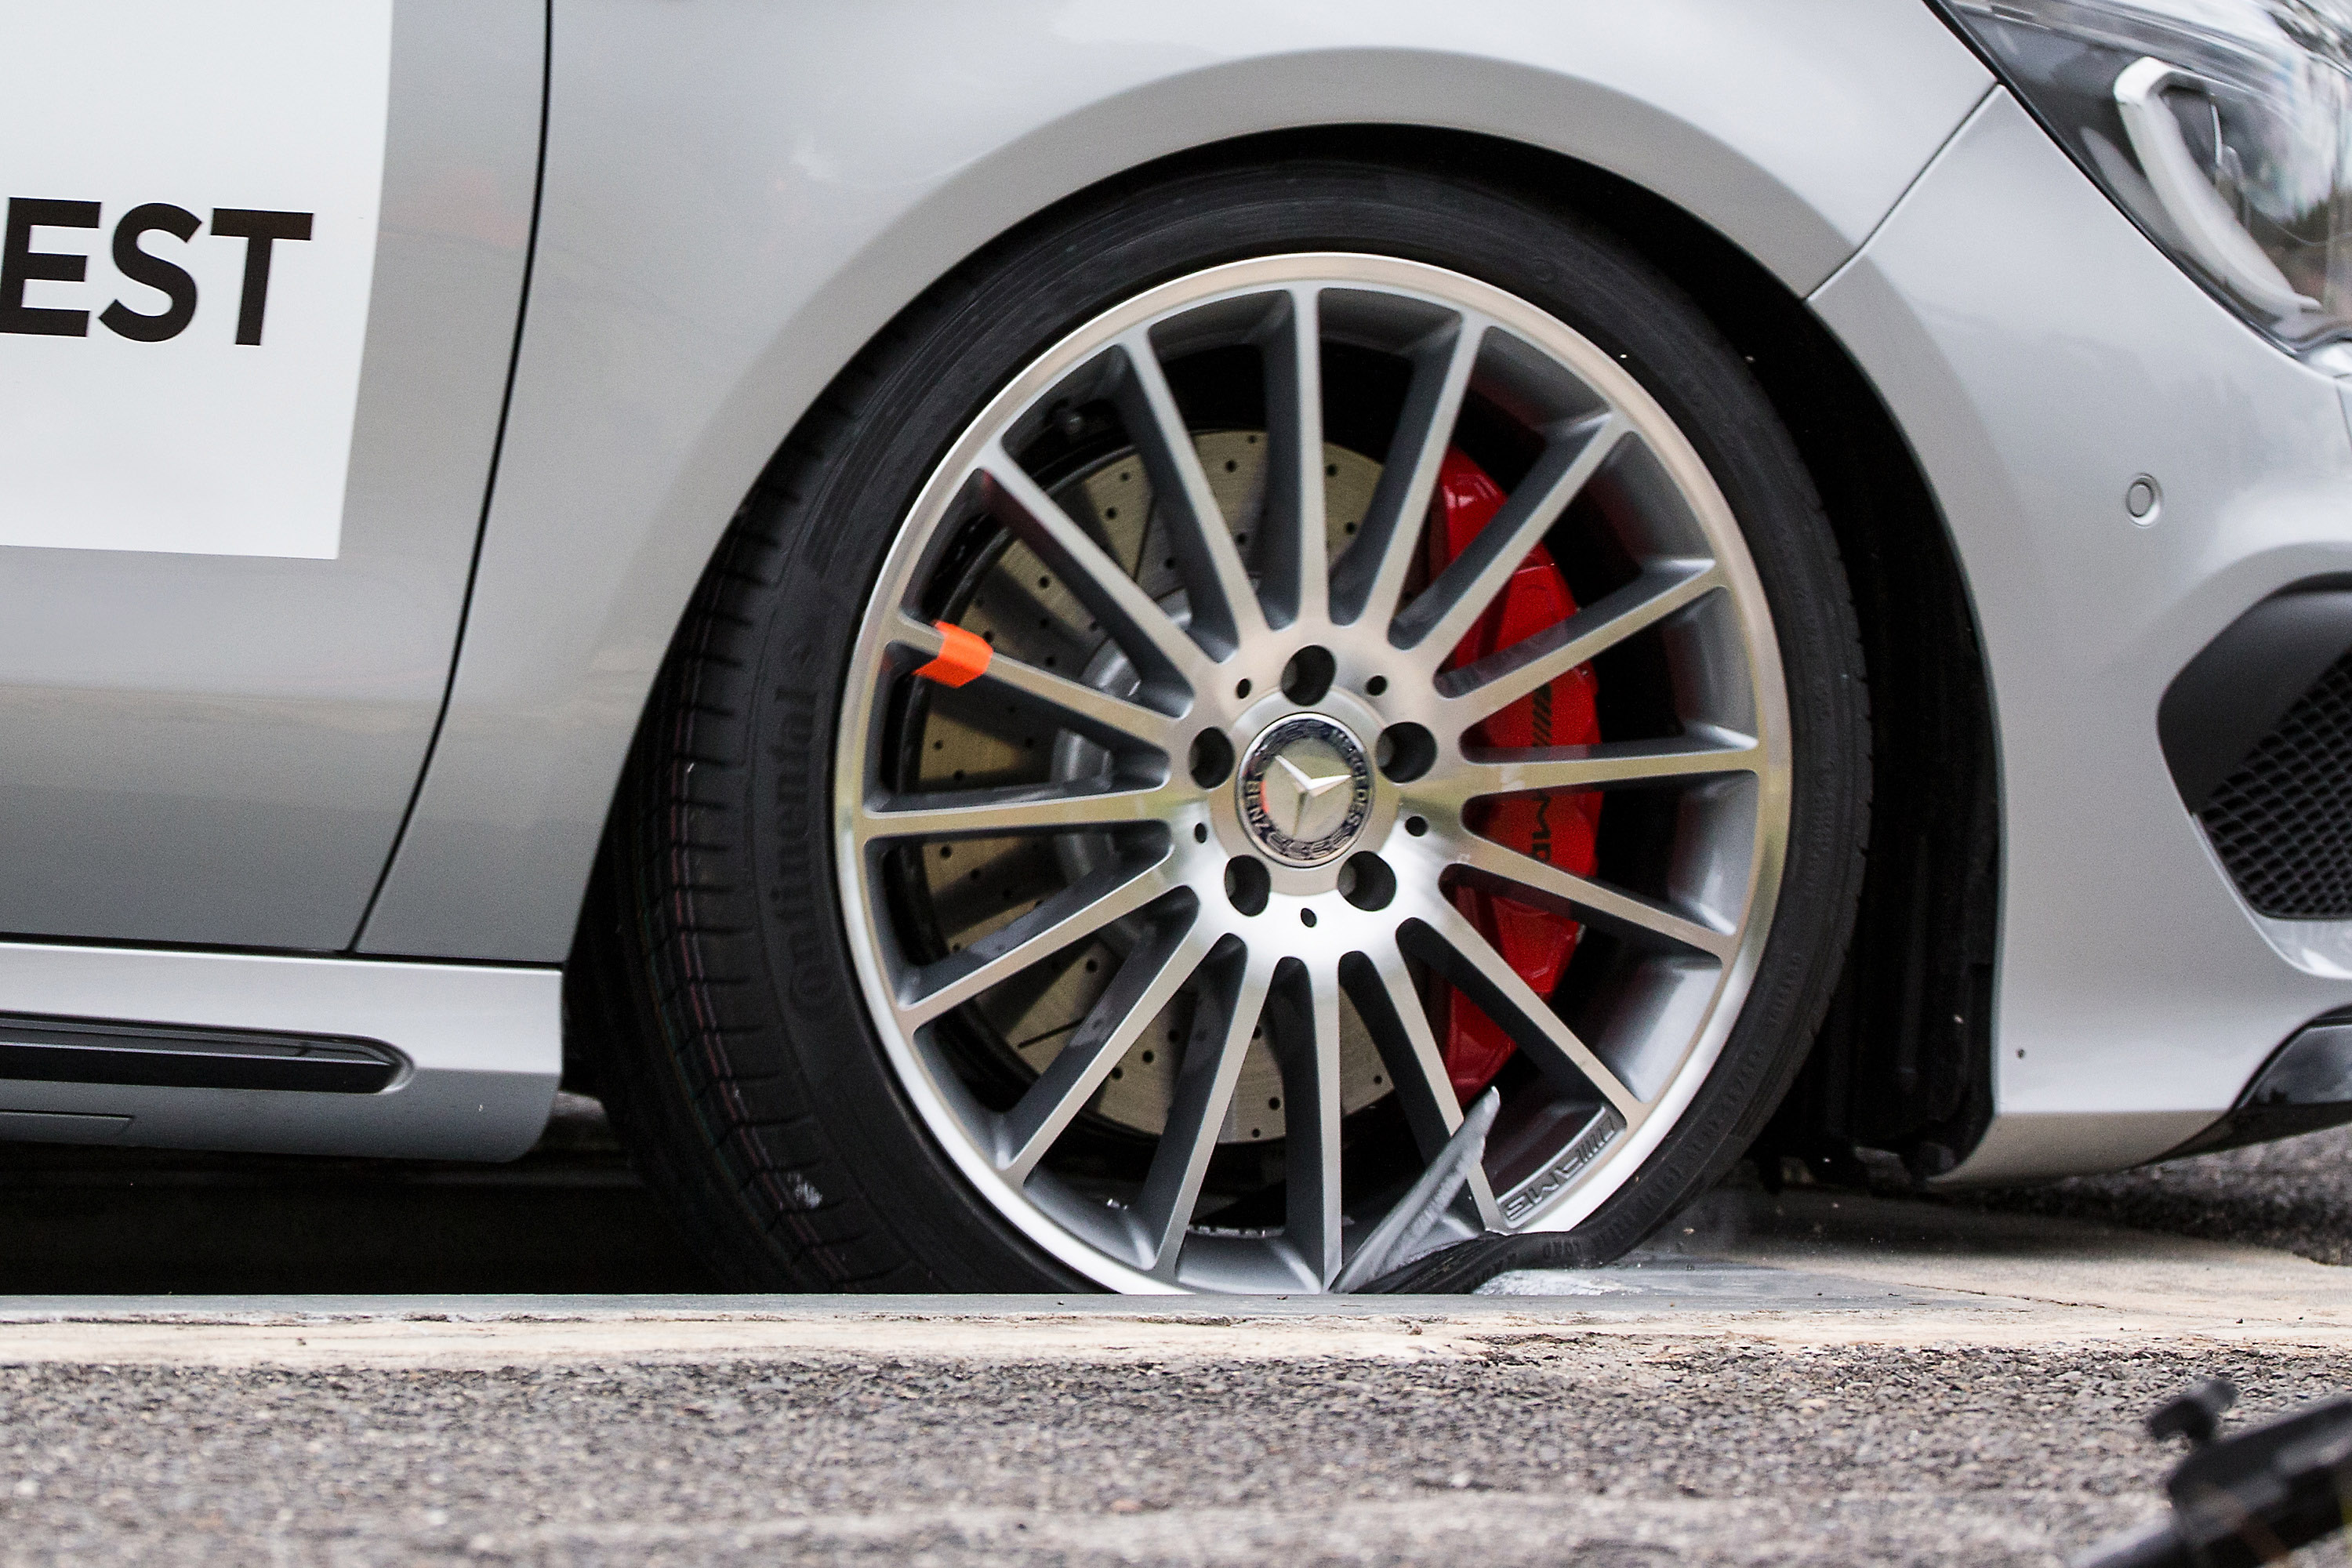 Counterfeit wheels failed at 50km/h in a standard pothole test.